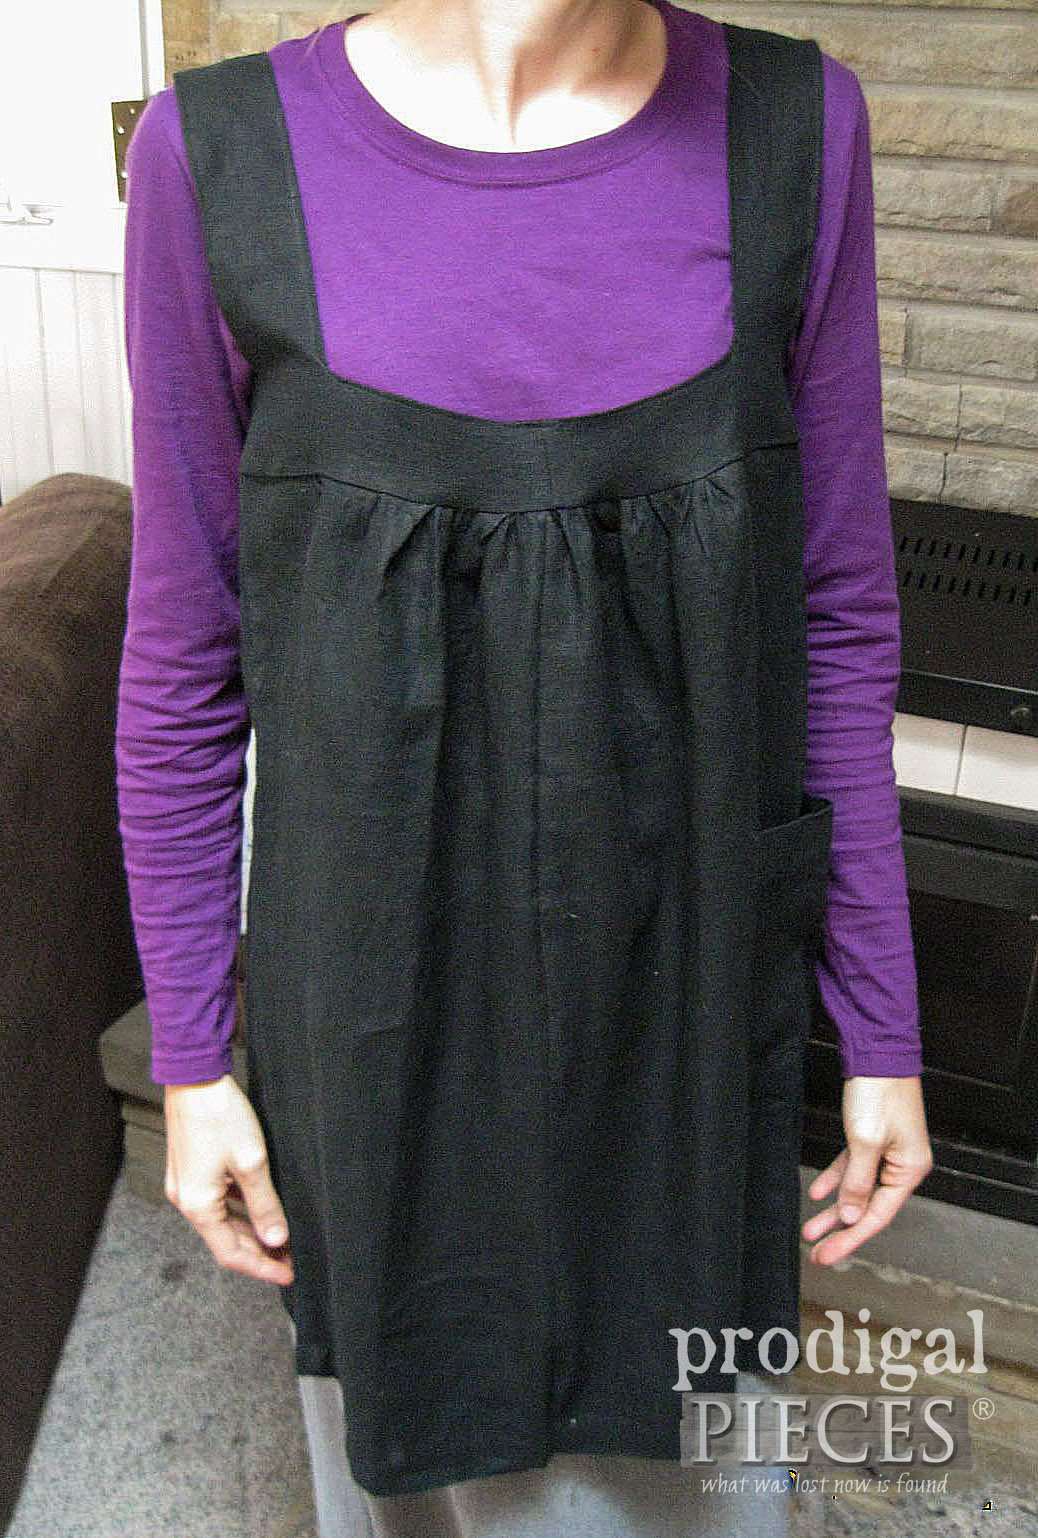 DIY Black Linen Smock from Refashioned Pants by Larissa of Prodigal Pieces | prodigalpieces.com #prodigalpieces